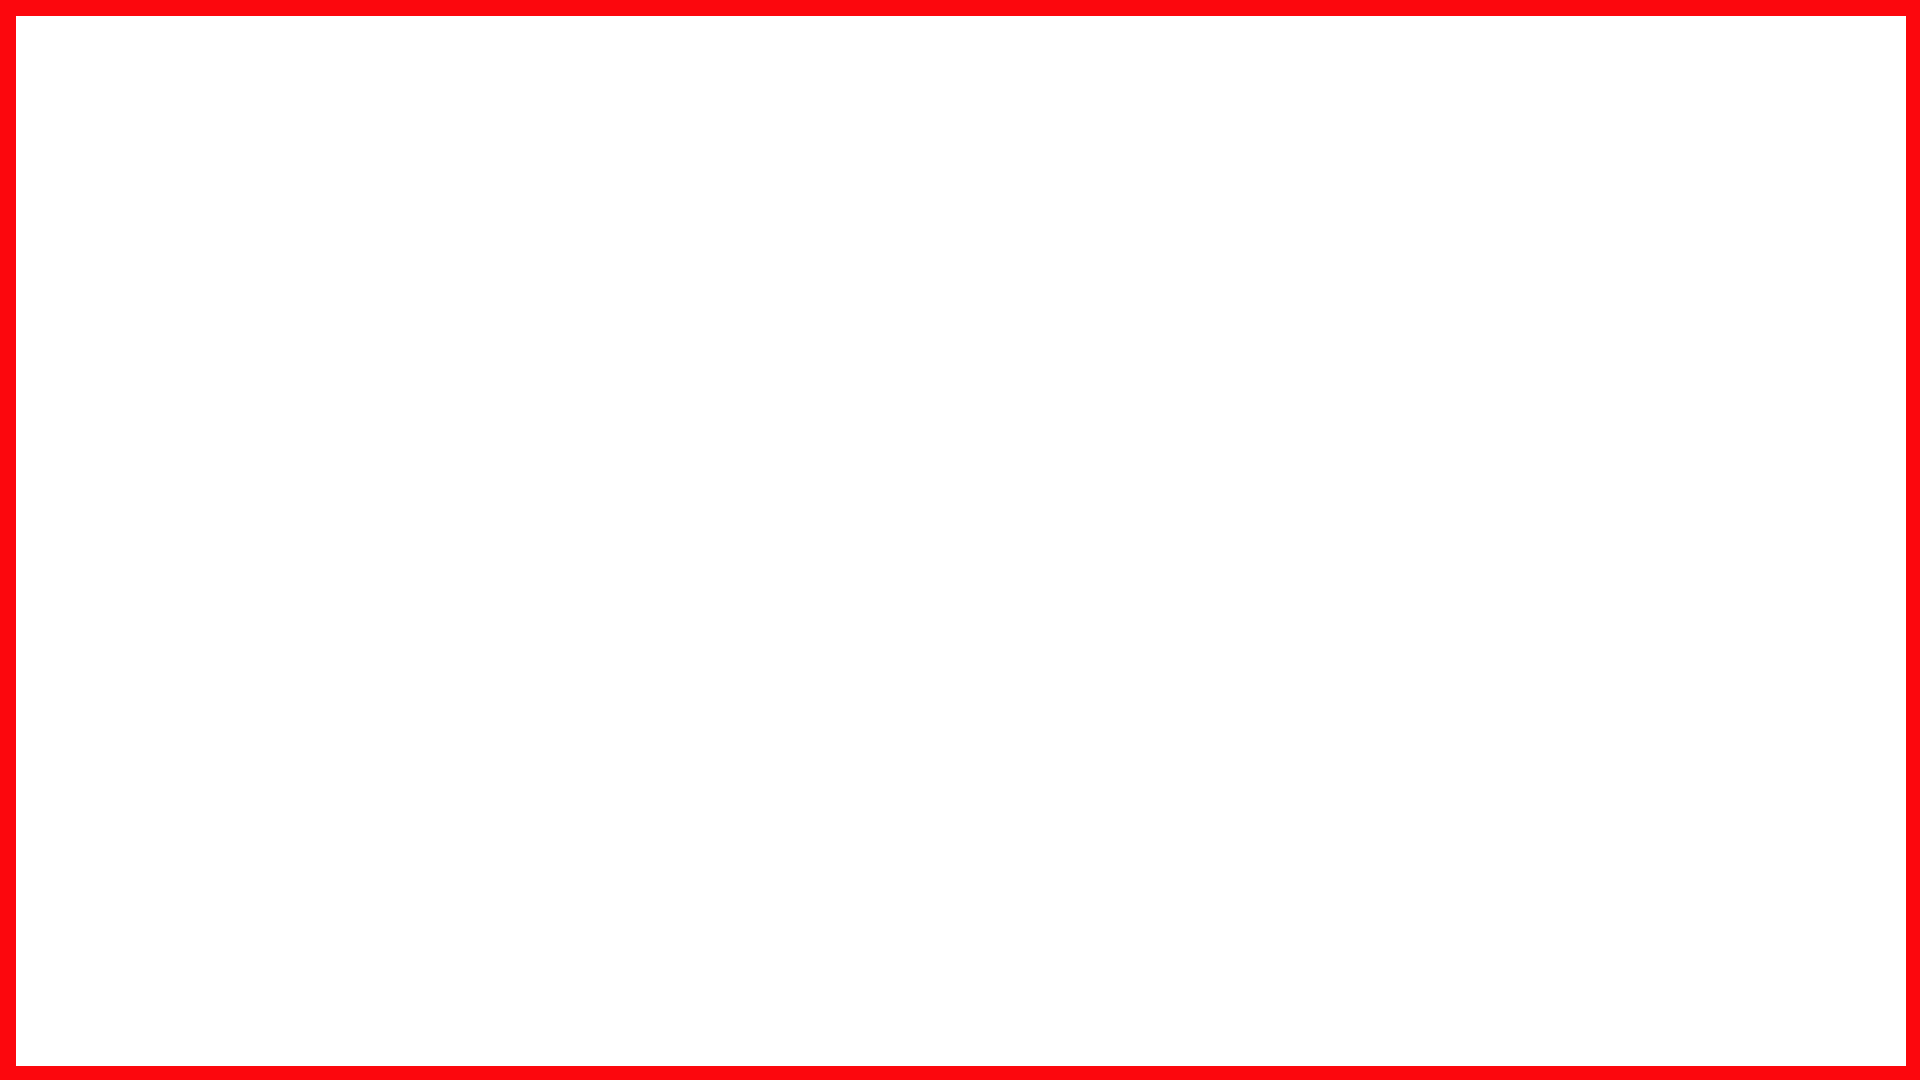 Red border png. Keep of image with